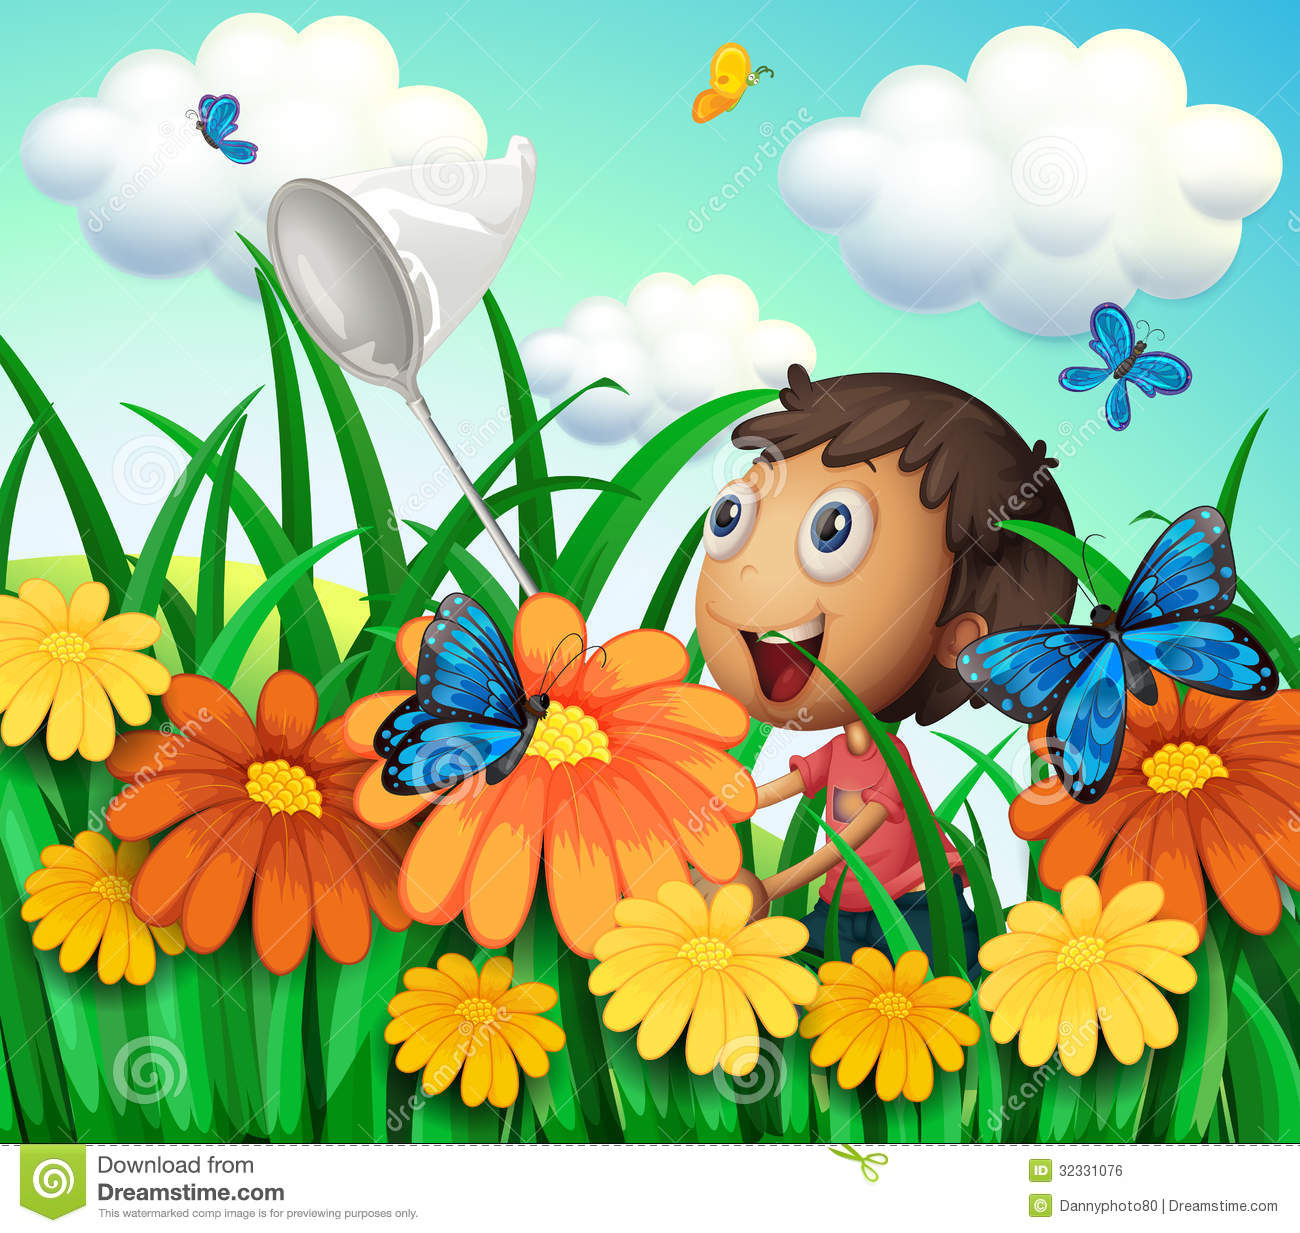 a boy catching butterflies at the flower garden royalty free stock